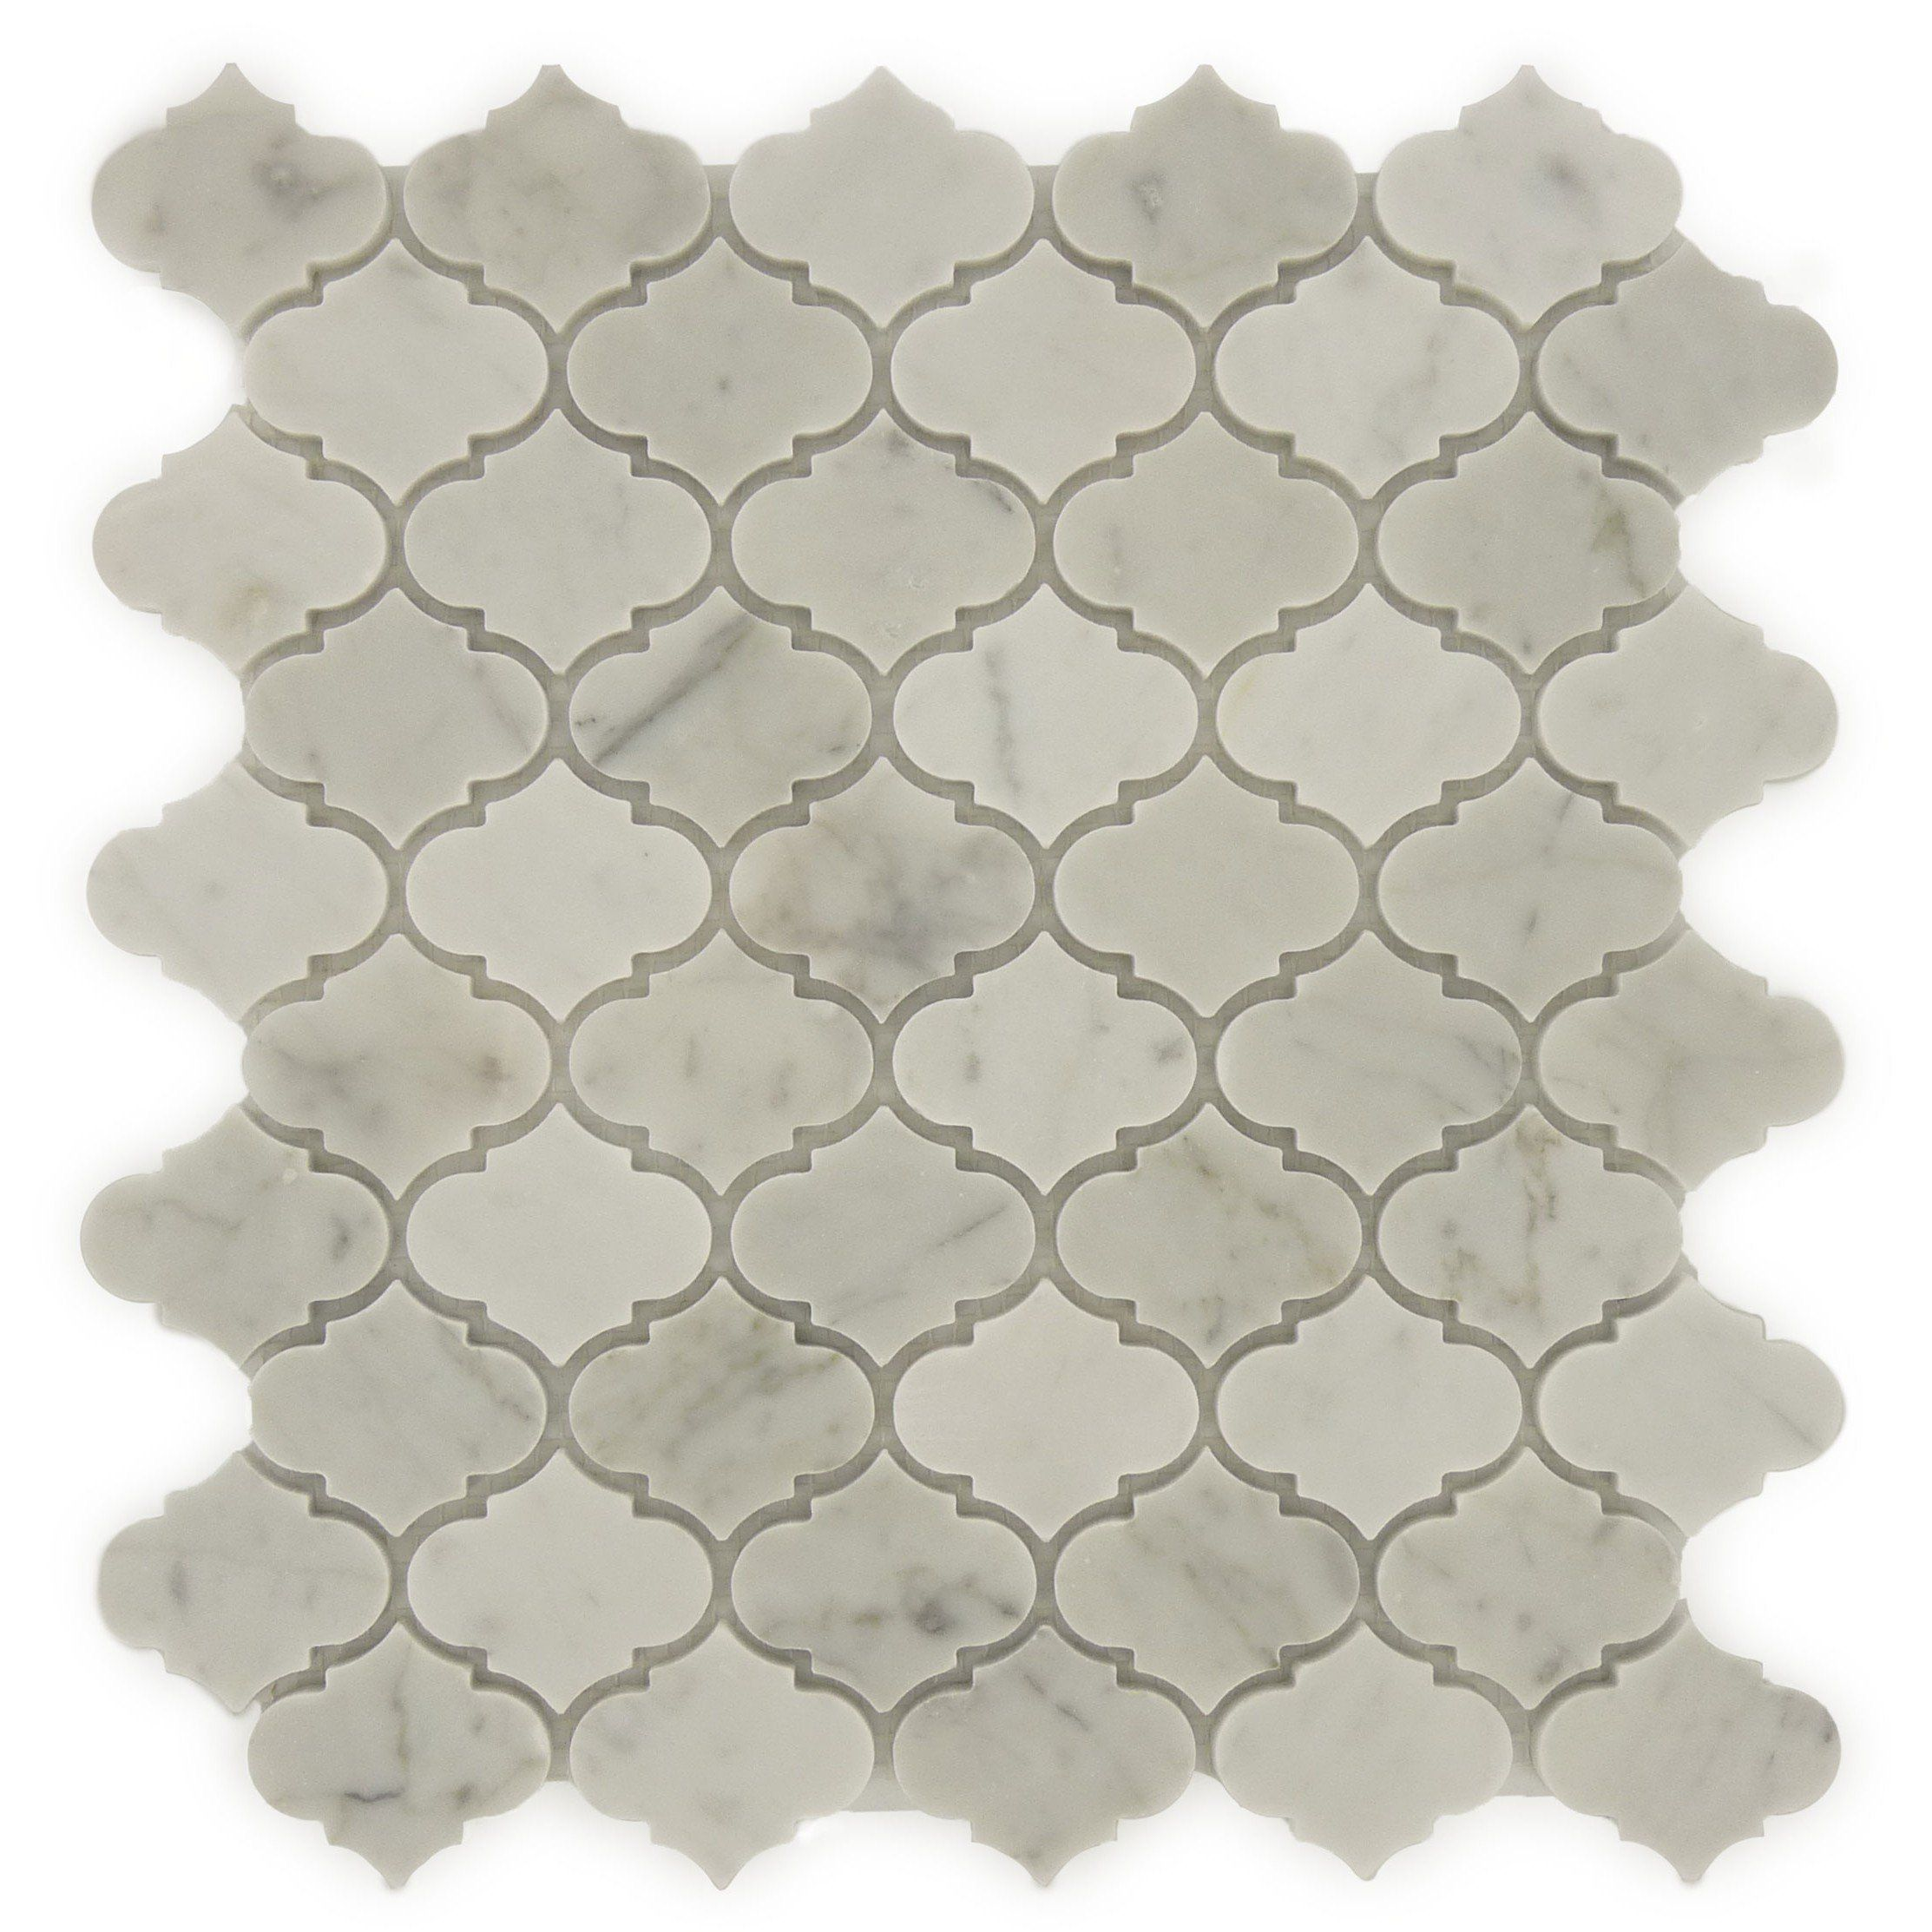 Sheet Size 11 X 10 1 4 Tile Size 1 7 8 X 1 5 8 Tile Thickness 1 4 Nominal Grout Joints 1 8 Sheet Mount Me Stone Tiles Ceramic Wall Tiles Mosaic Stone